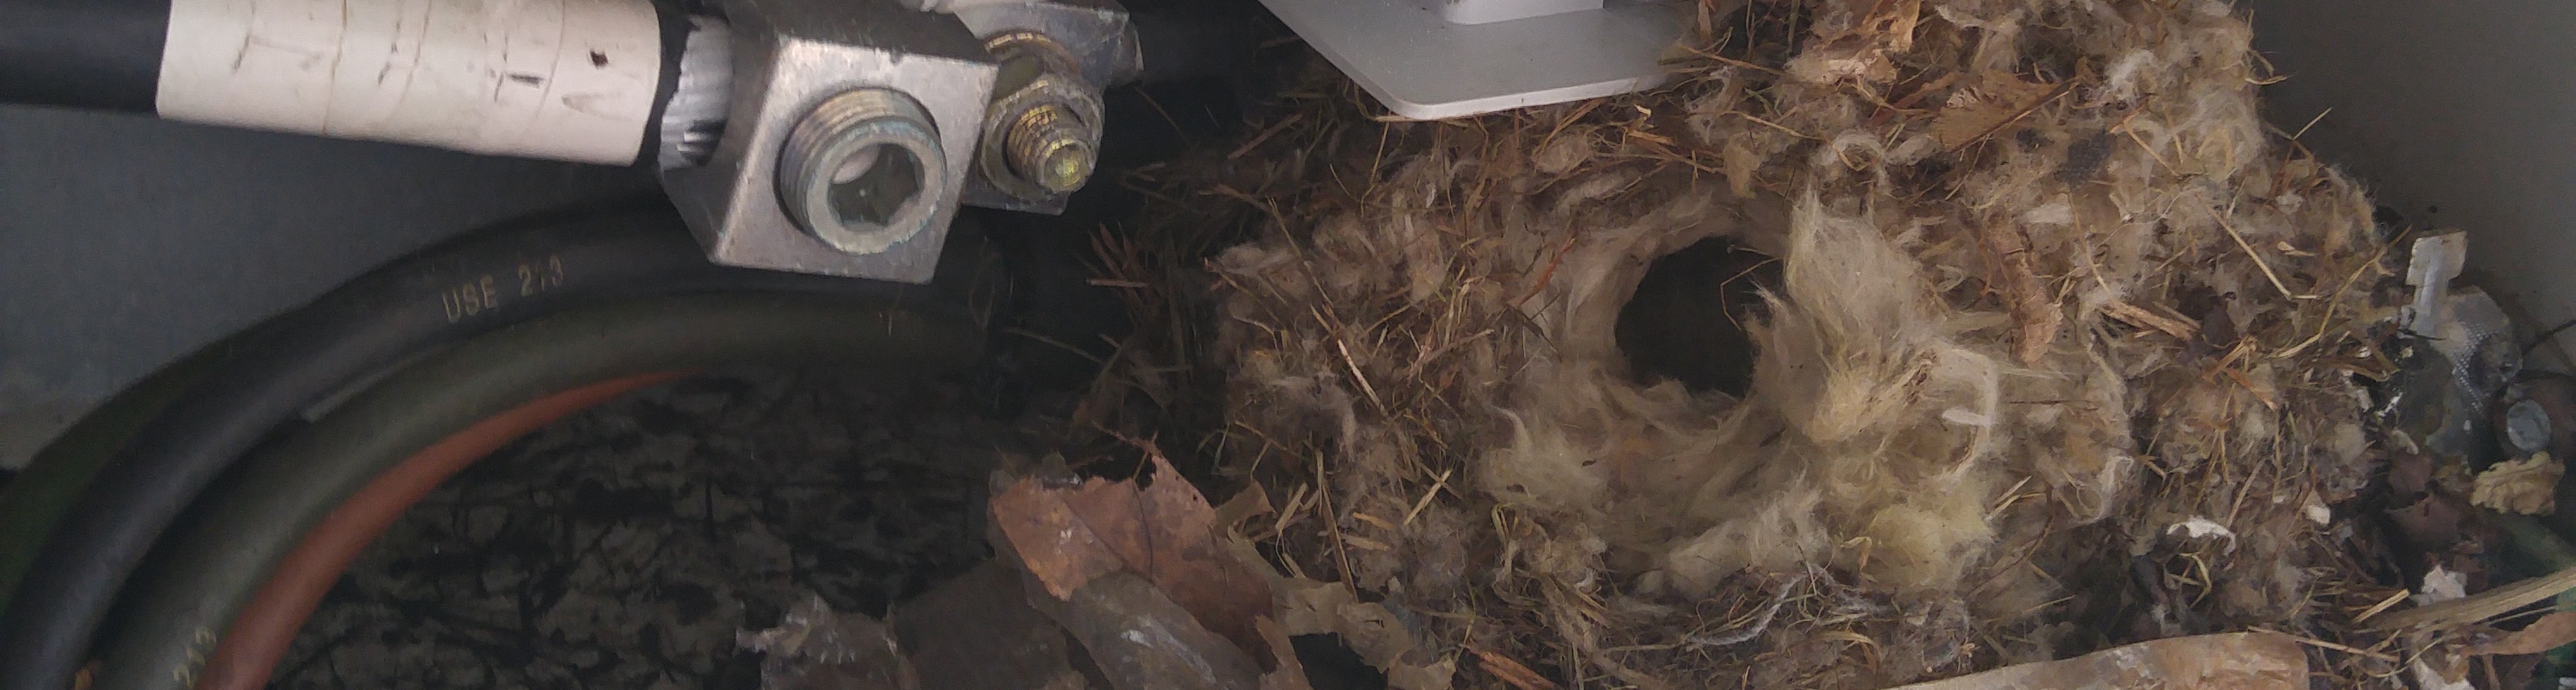 Mouse Nest in Generator